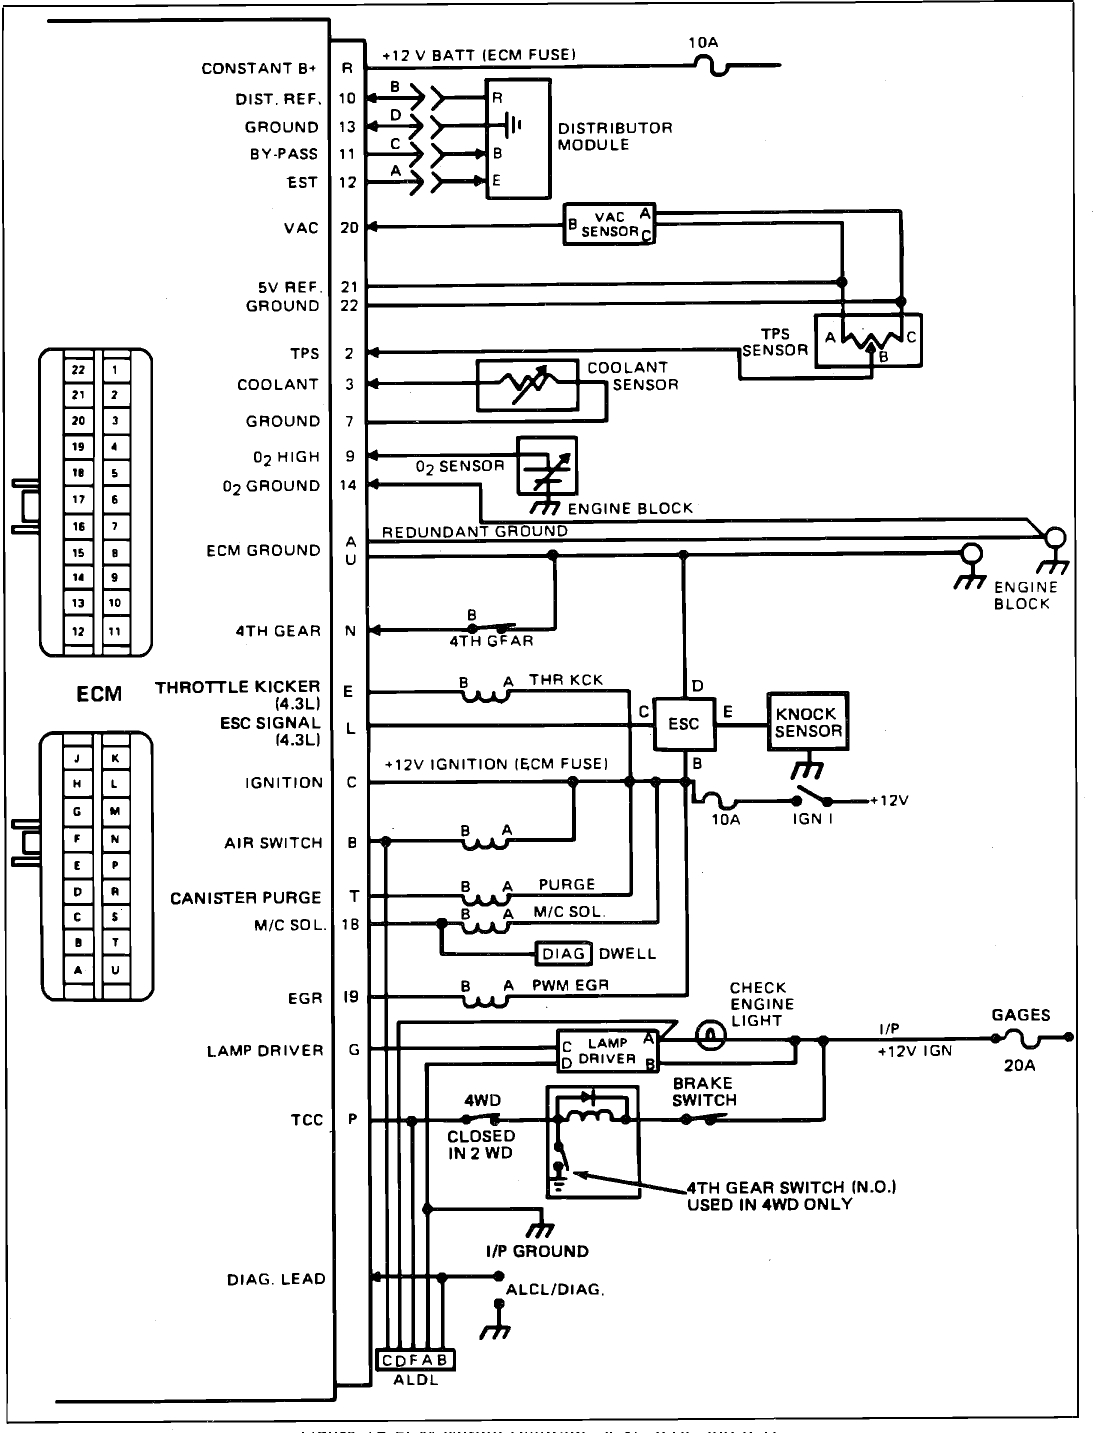 original i need a fuse box diagram with wiring colors 1995 chevy silverado fuse box diagram at edmiracle.co